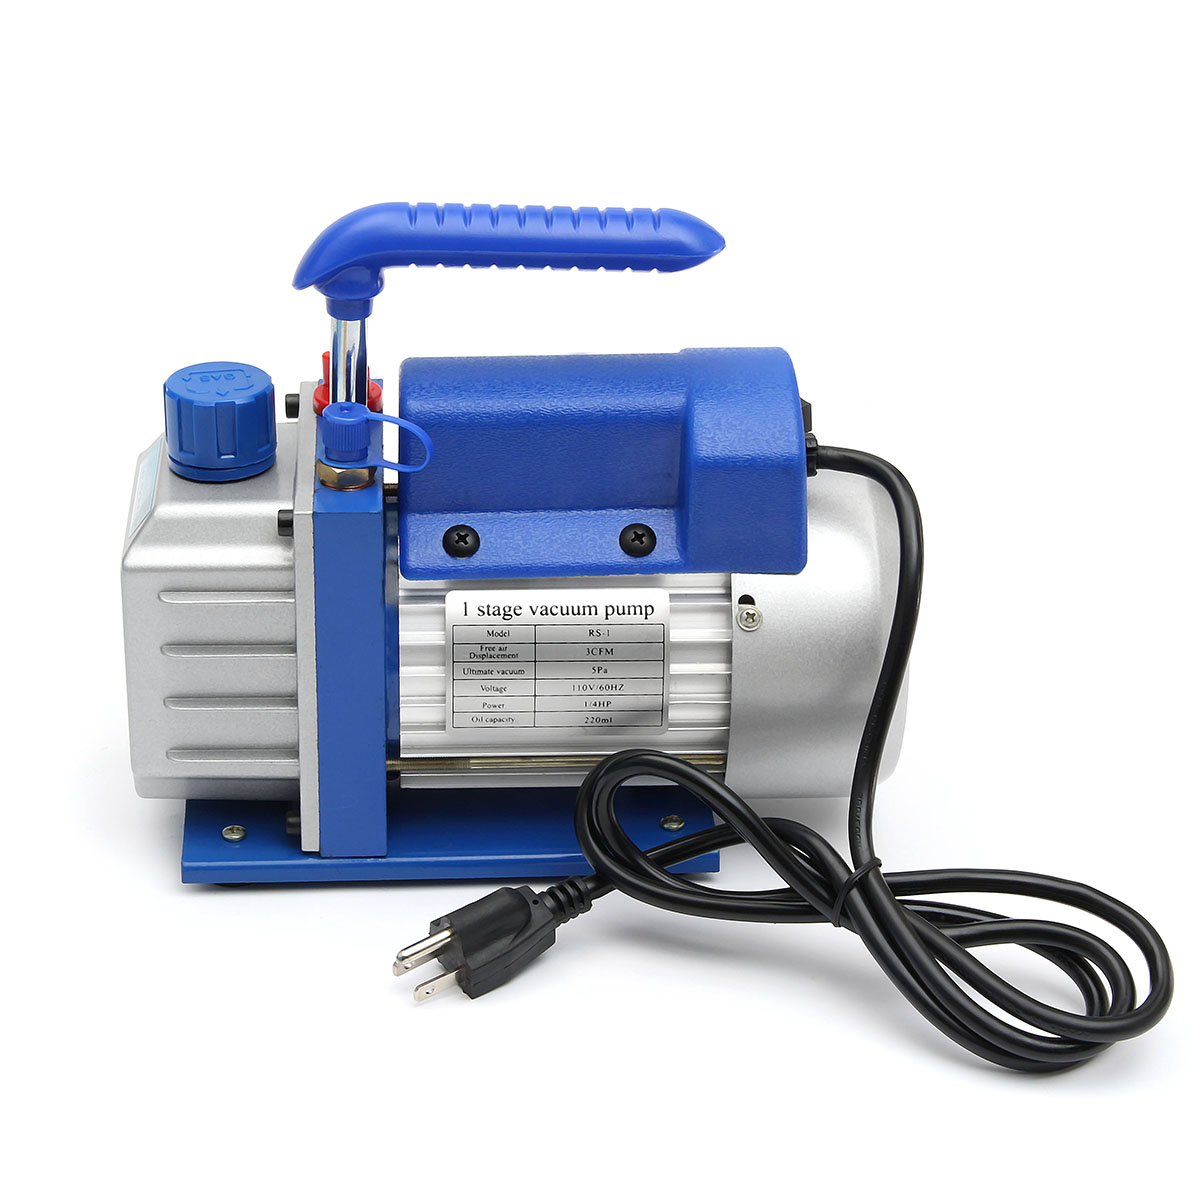 110V 180W 60HZ 3CFM Rotary Vane Low Pressure Single Stage Vacuum Pump 1/4HP Air Conditioning Tool System Refrigeration Tools 220v 180w r32 r1234yf special new refrigerant vacuum pump single stage pump air conditioning and refrigeration tools v i125y r32